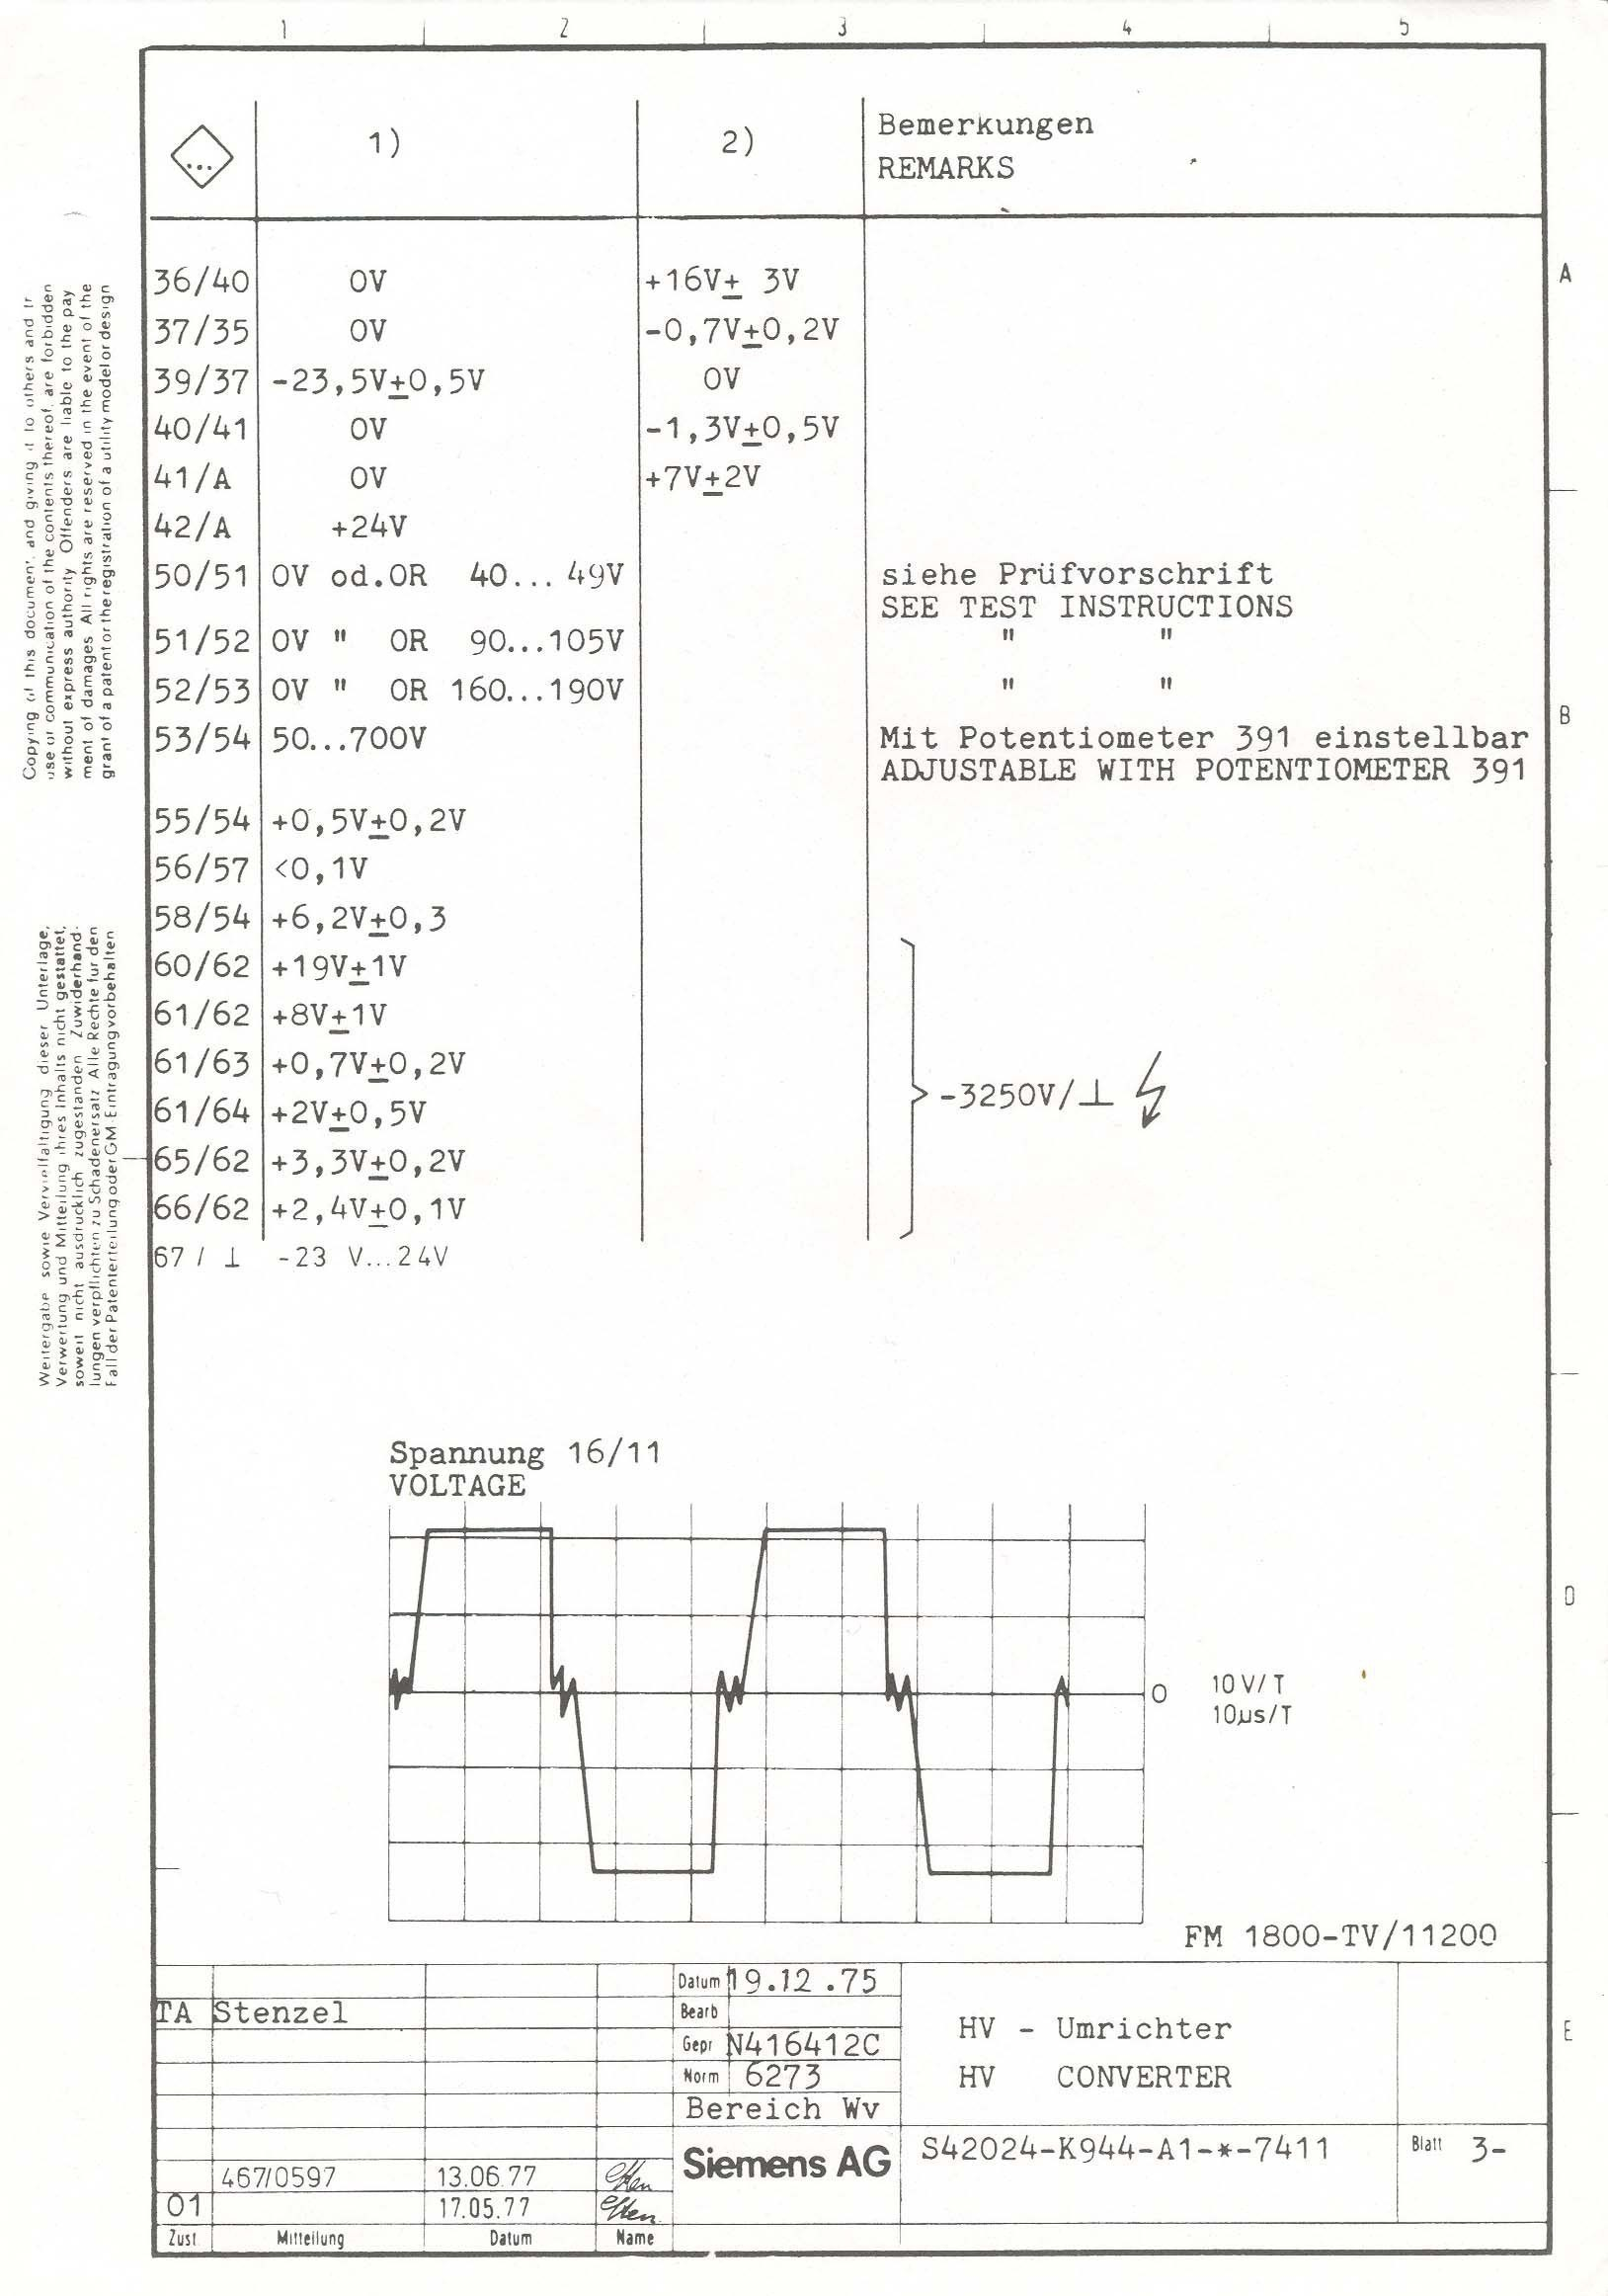 Wiring Diagram Moreover Ford Tractor Wiring Diagram On Wiring Diagram